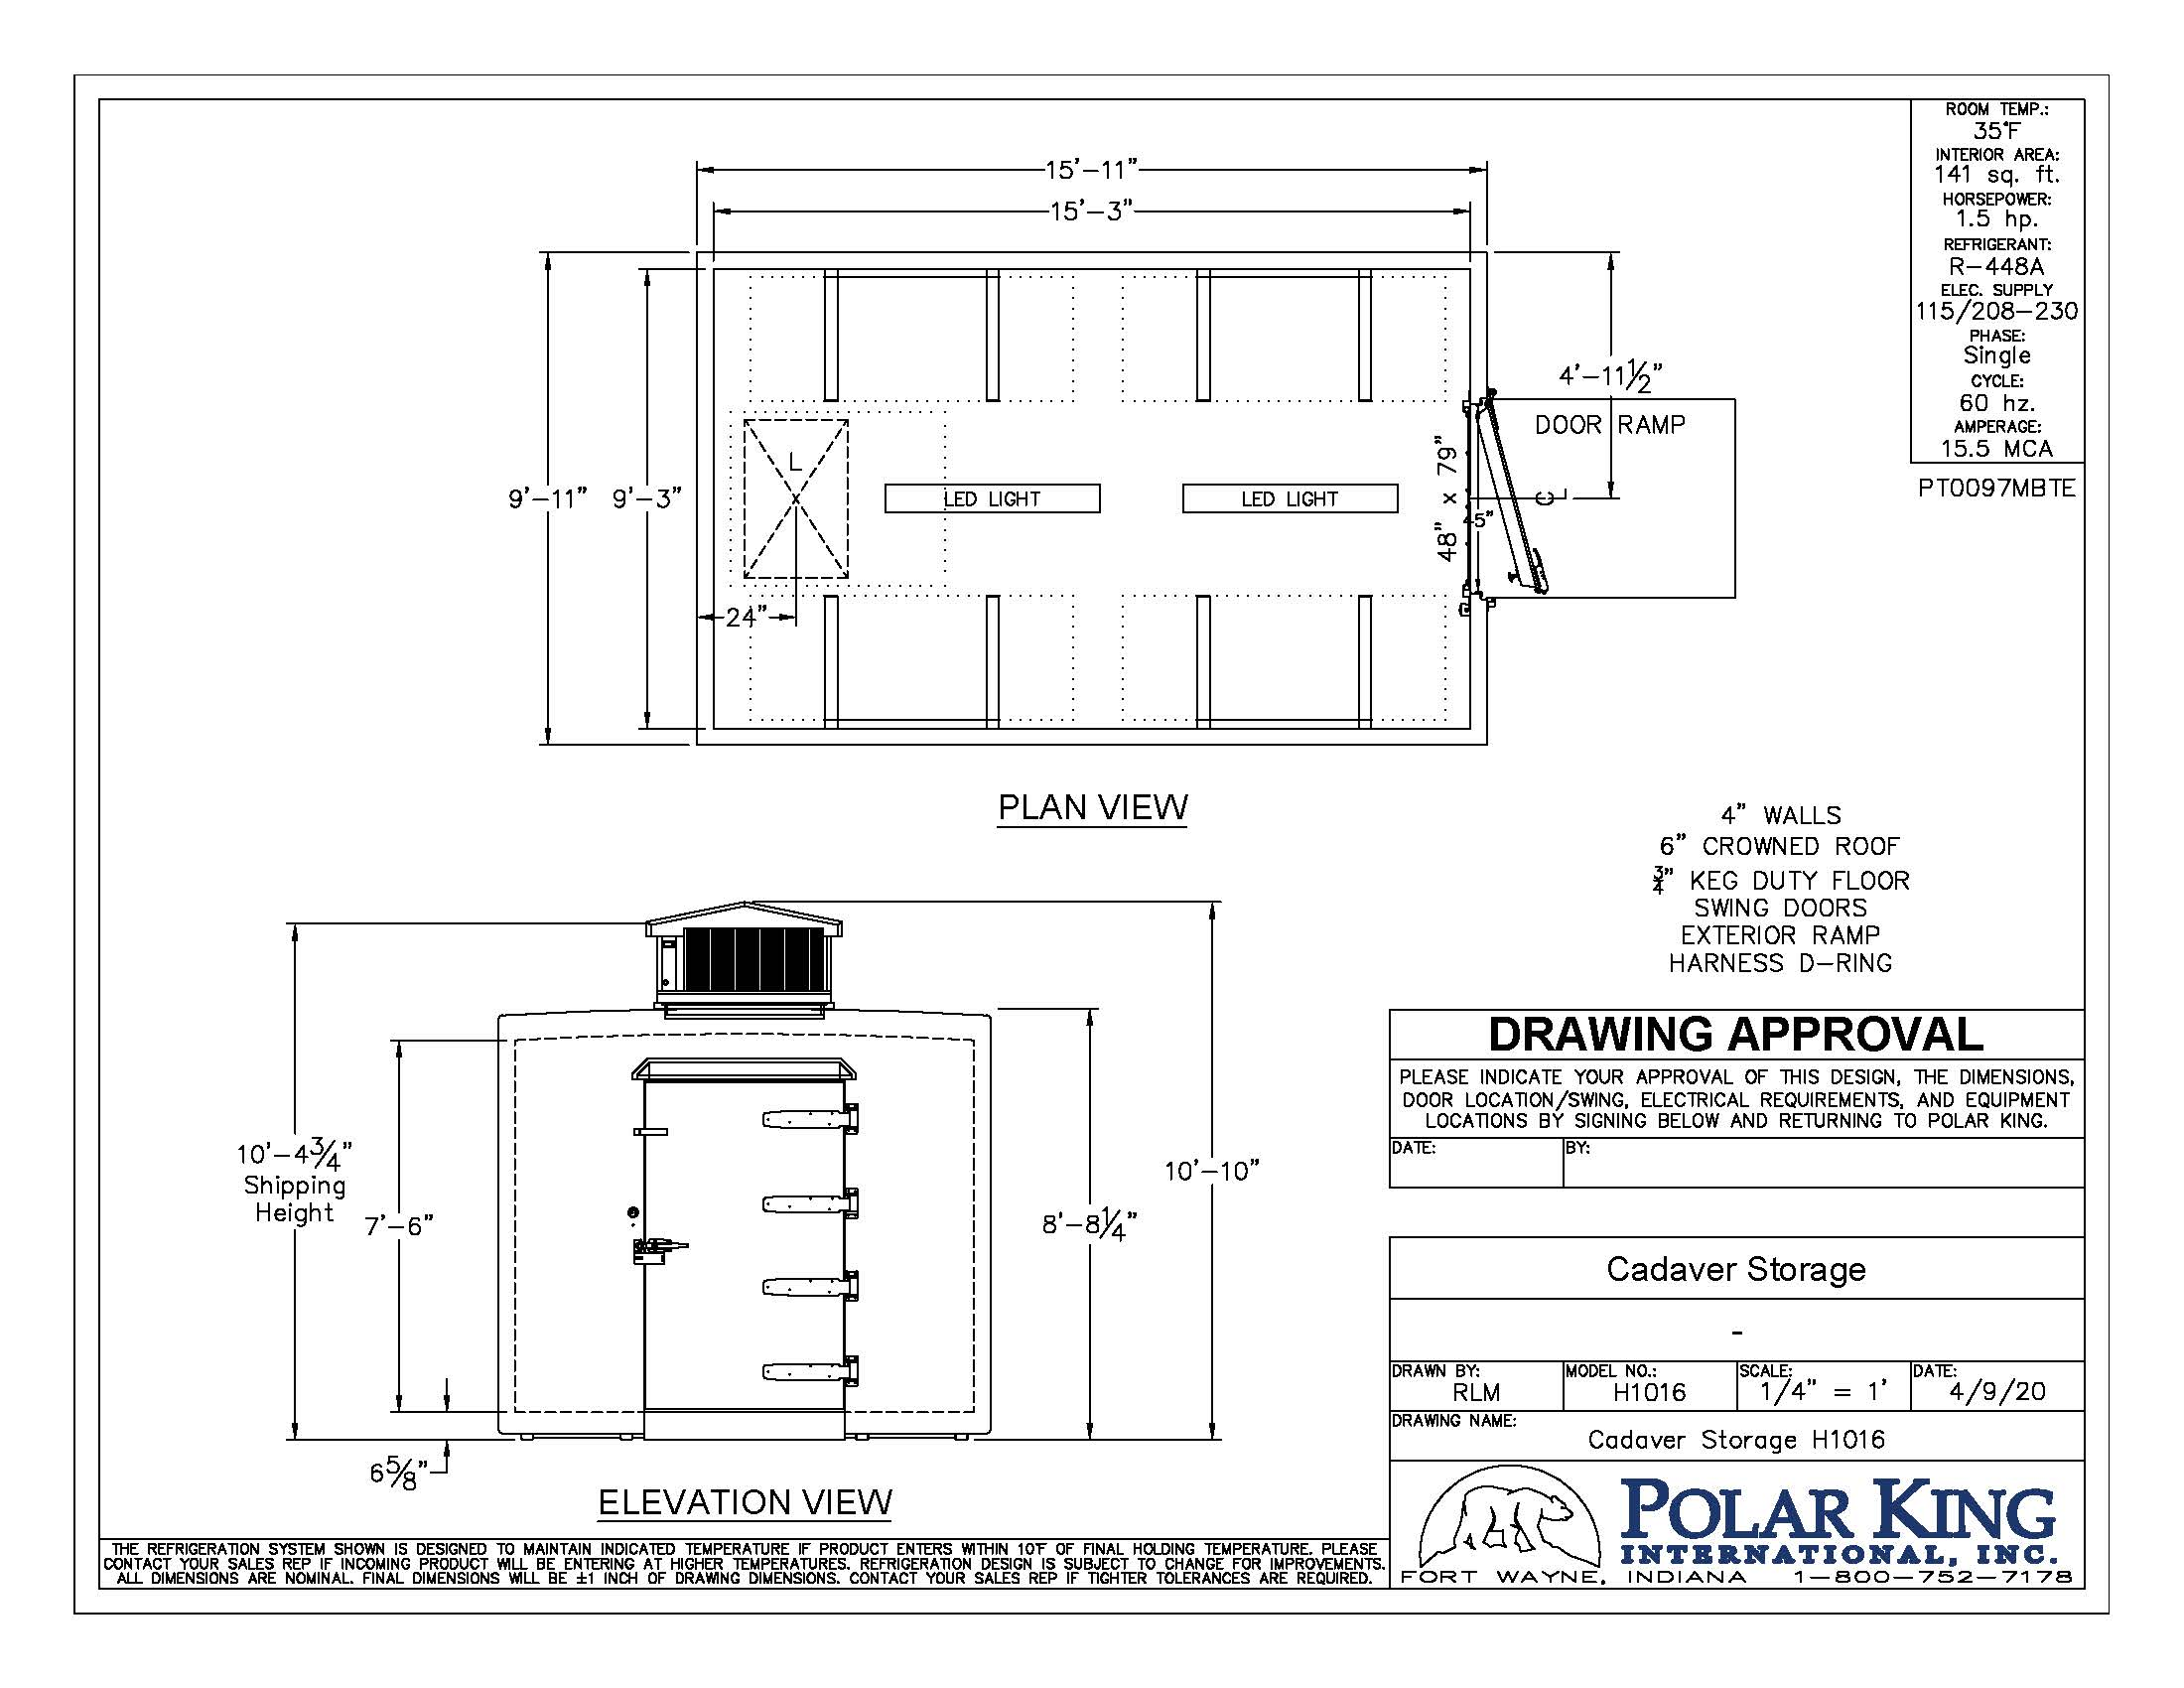 Cadaver storage unit outline walk-in cooler